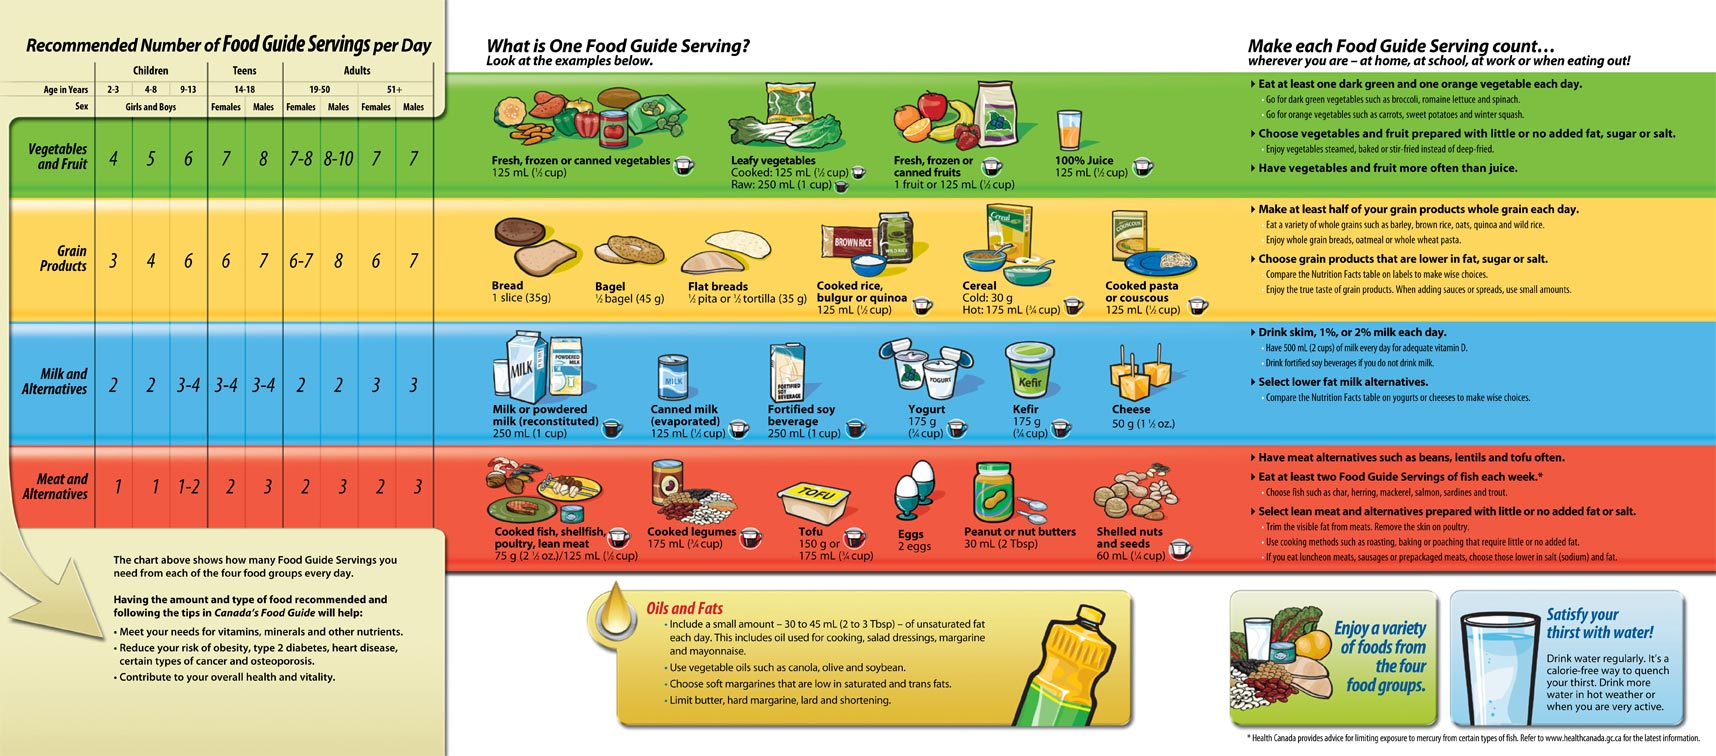 News orange juice may be out of canada's revised food guide.